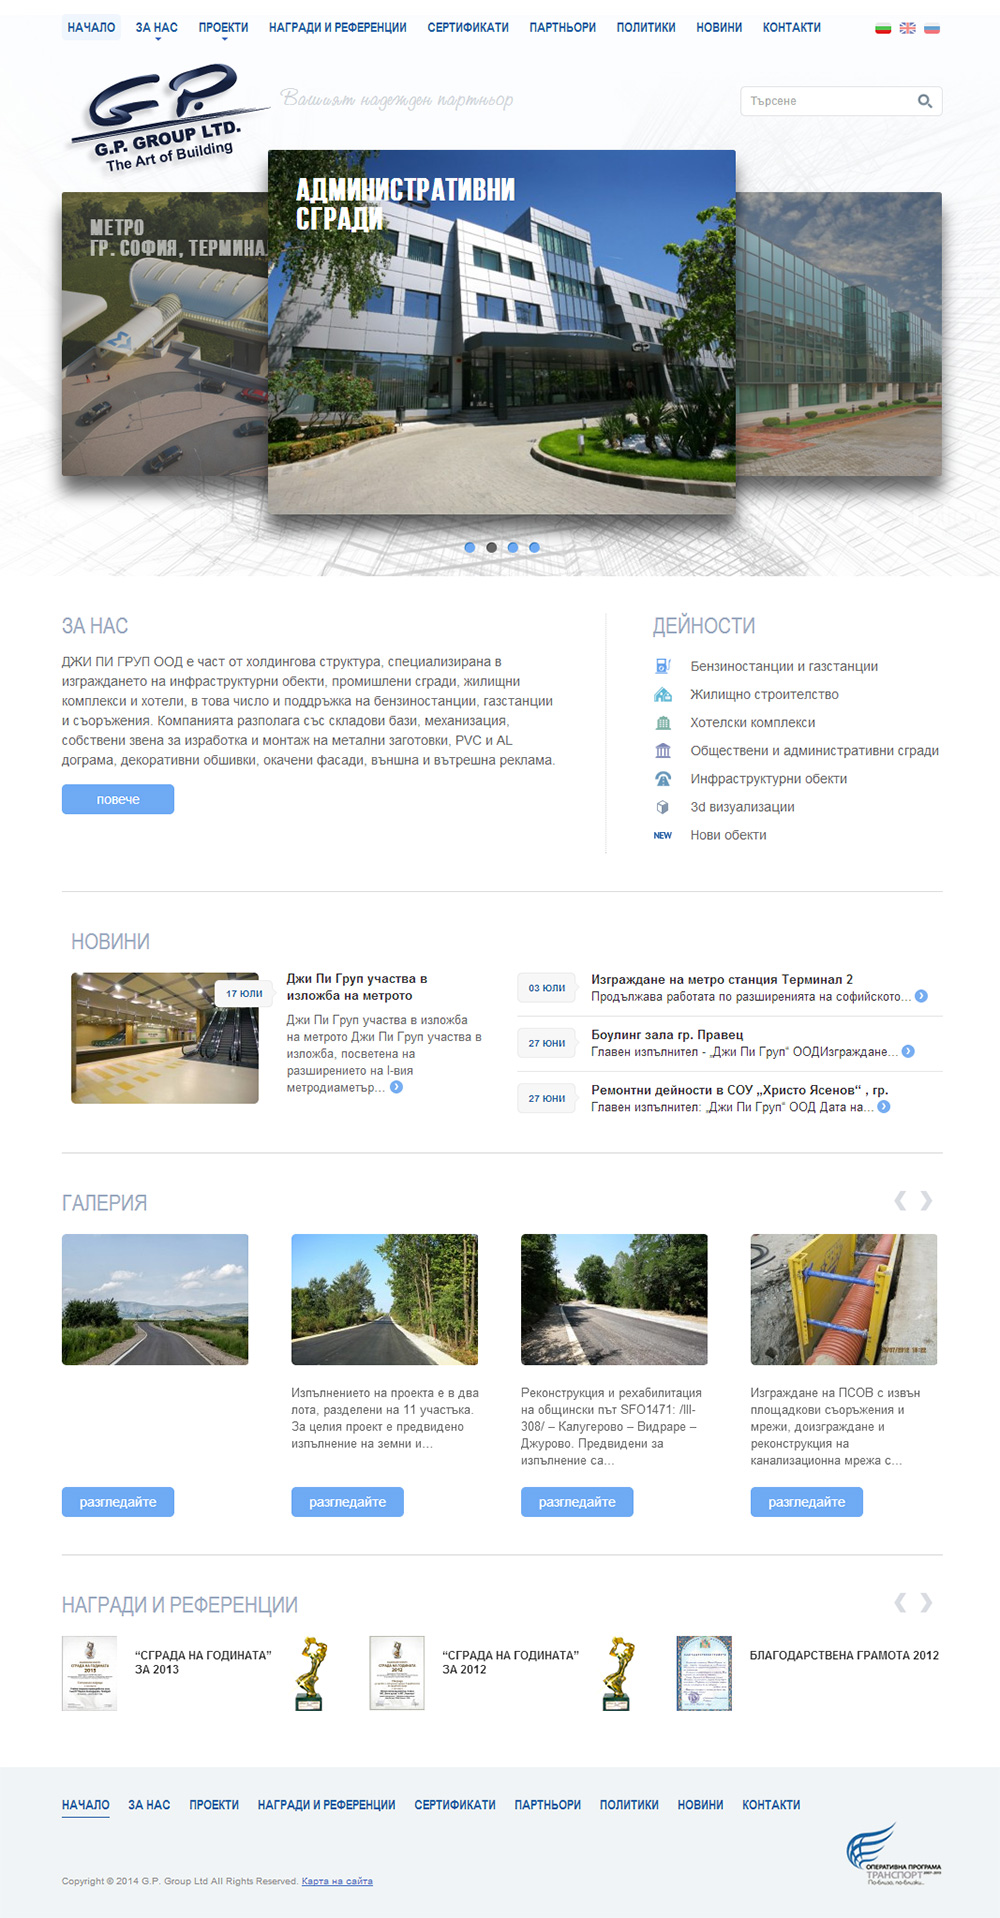 Website for G.P. Group, G.P. Group - Web Sites, Stenik, WordPress